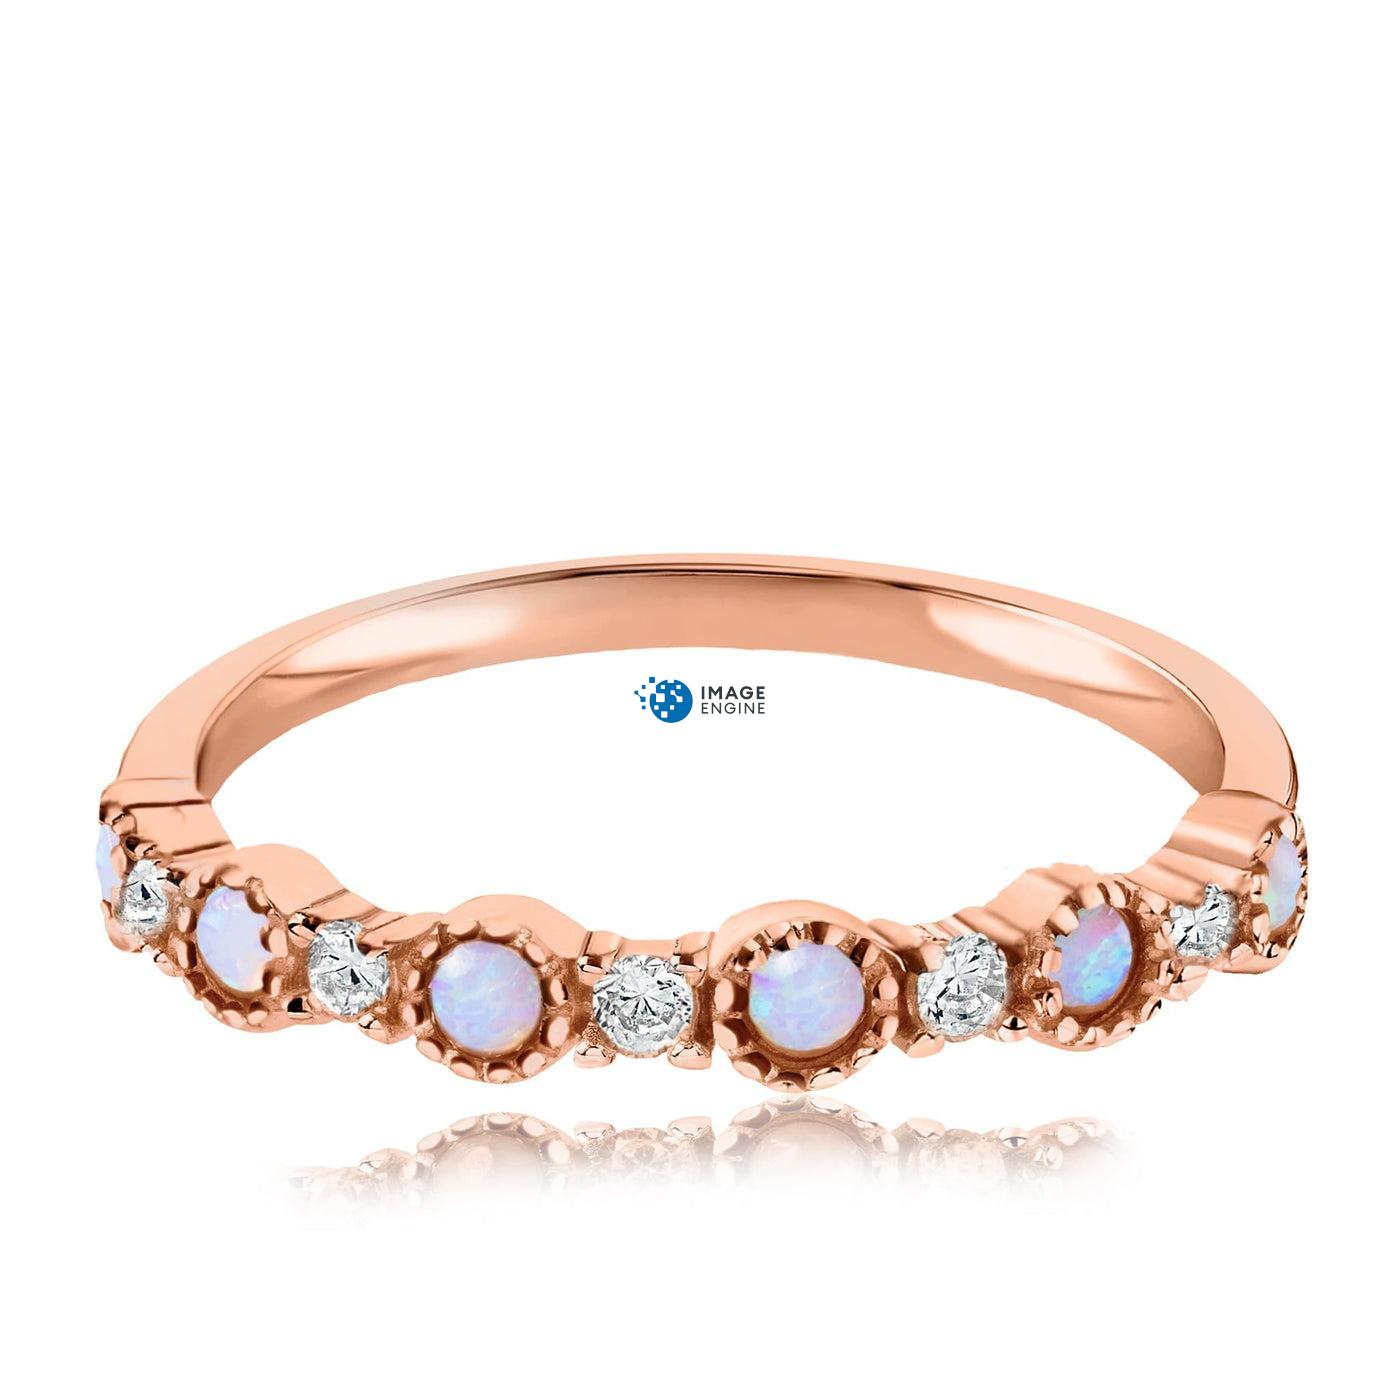 Debra Dots Opal Ring - Front View Facing Down - 18K Rose Gold Vermeil